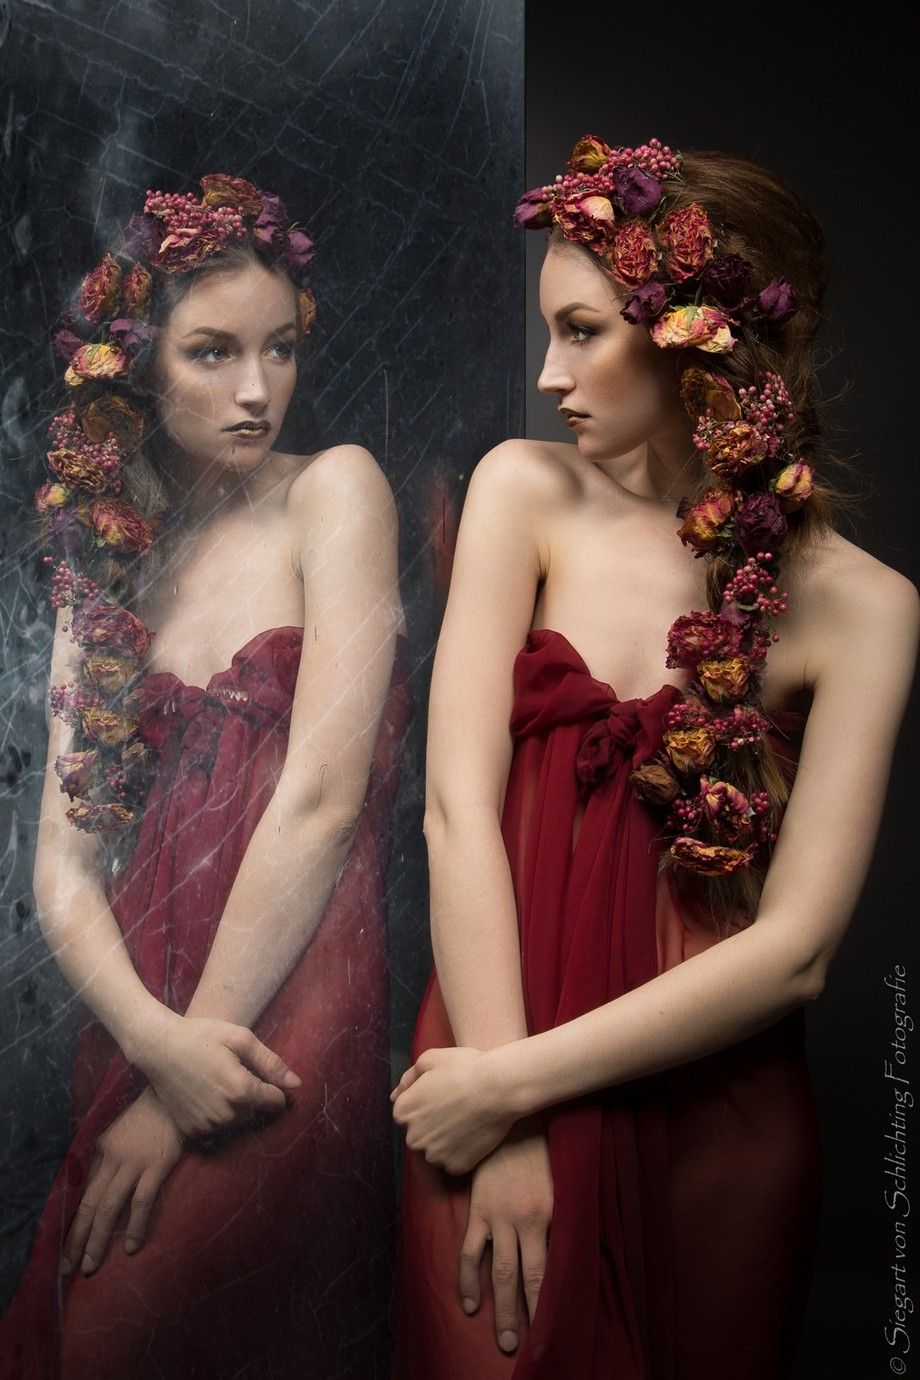 who is who by siegart - The Face in the Mirror Photo Contest